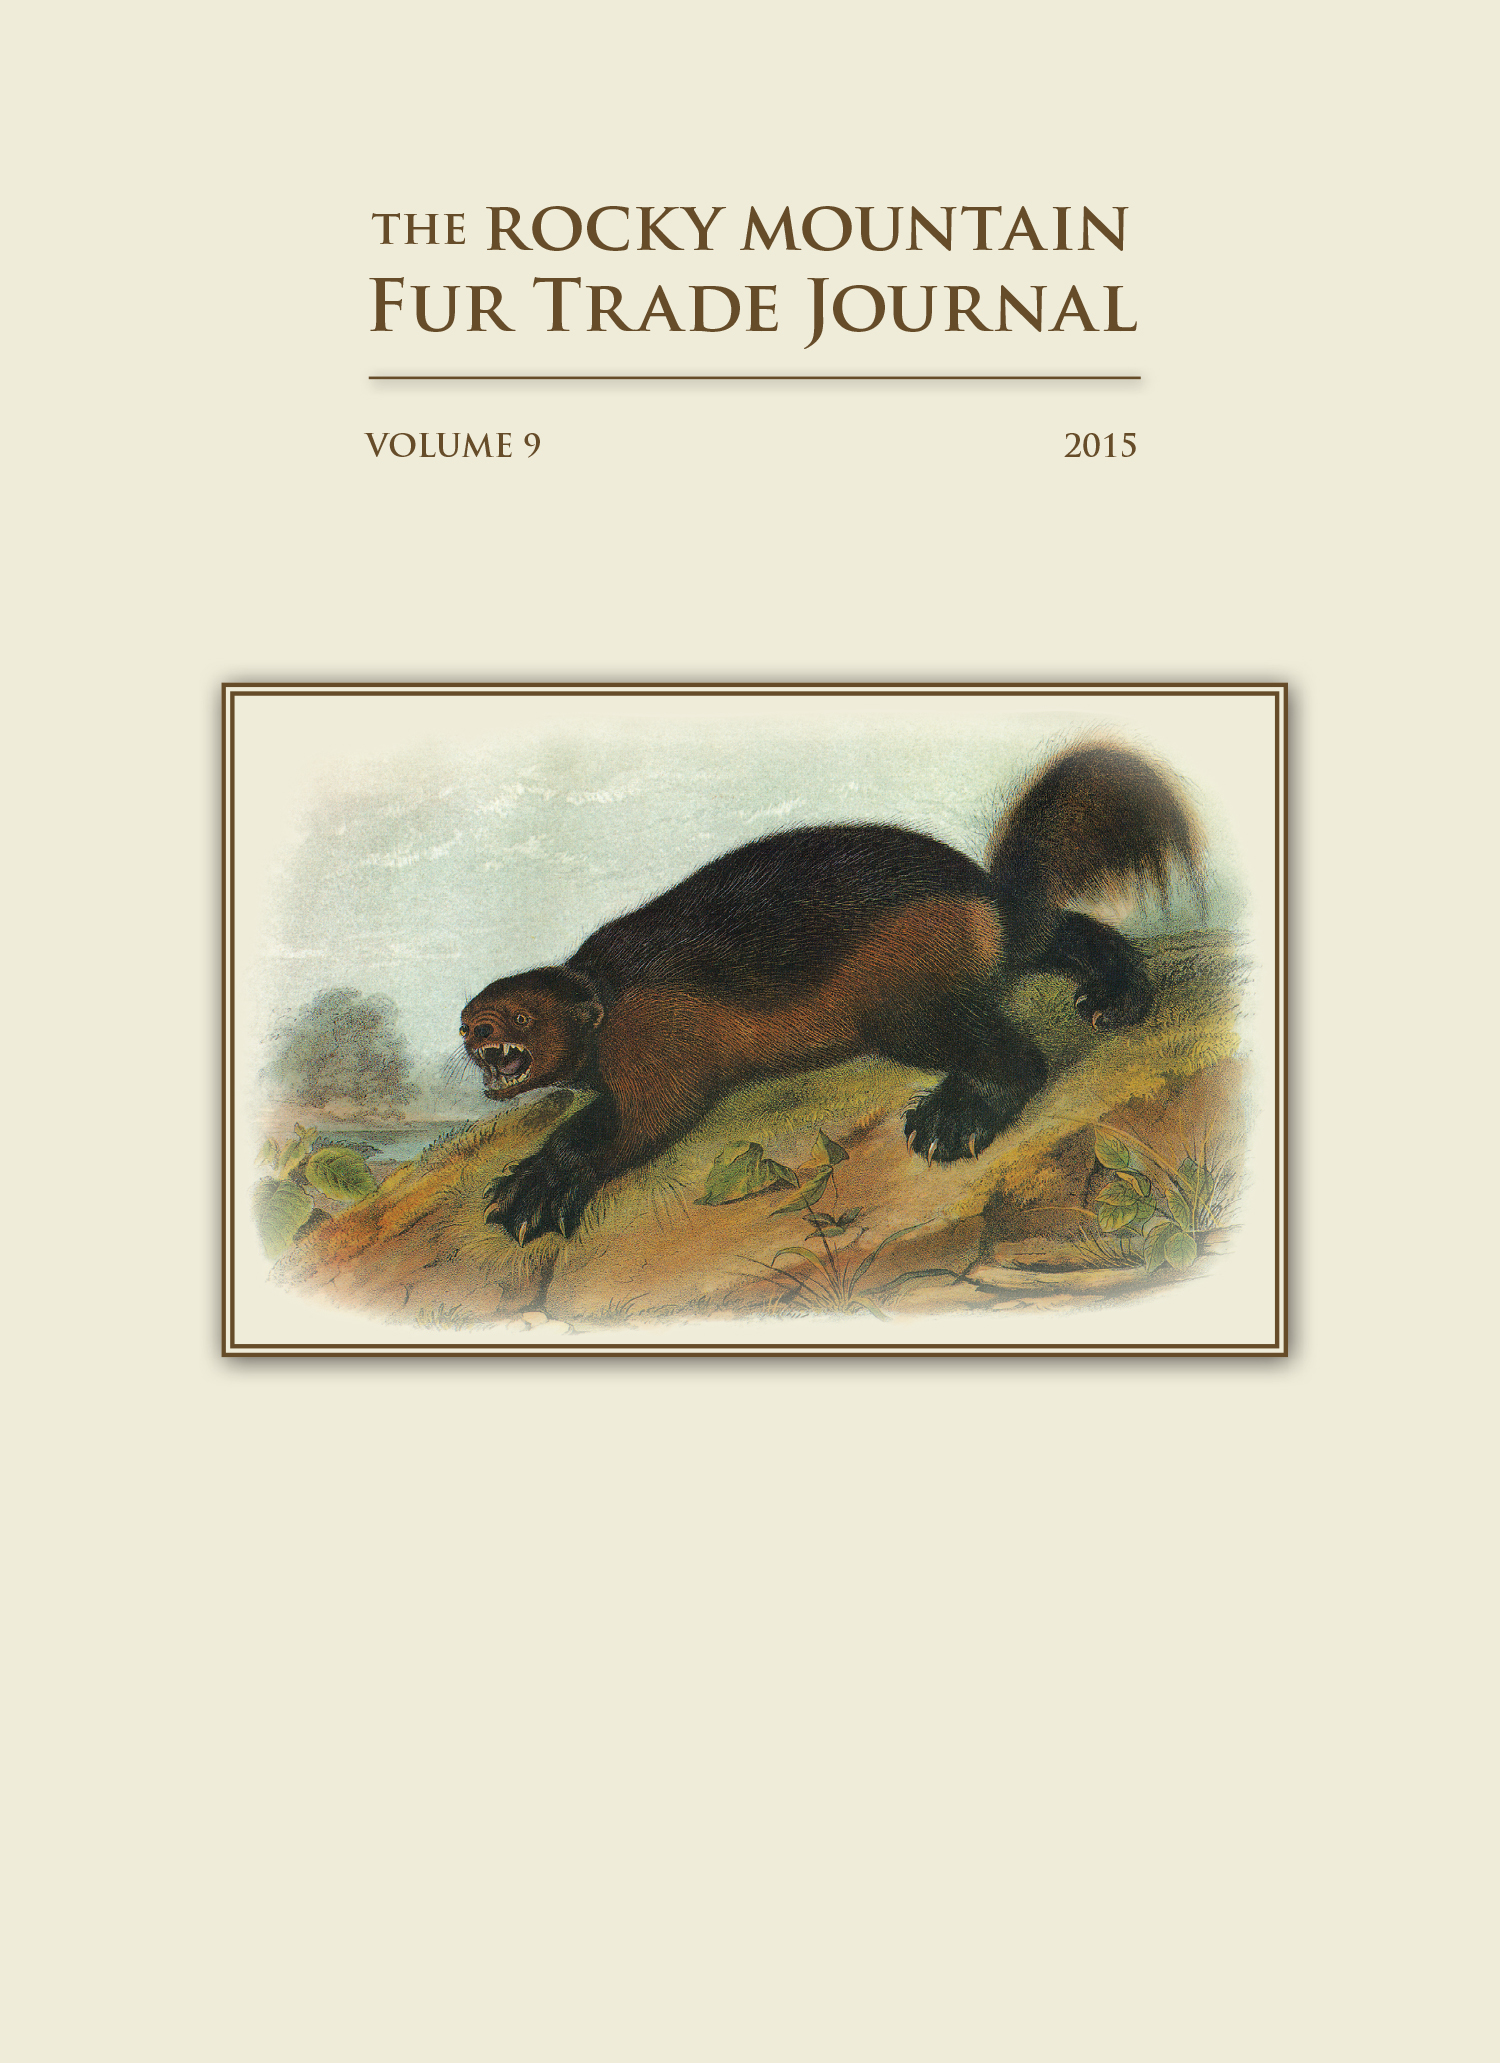 2015 Rocky Mountain Fur Trade Journal